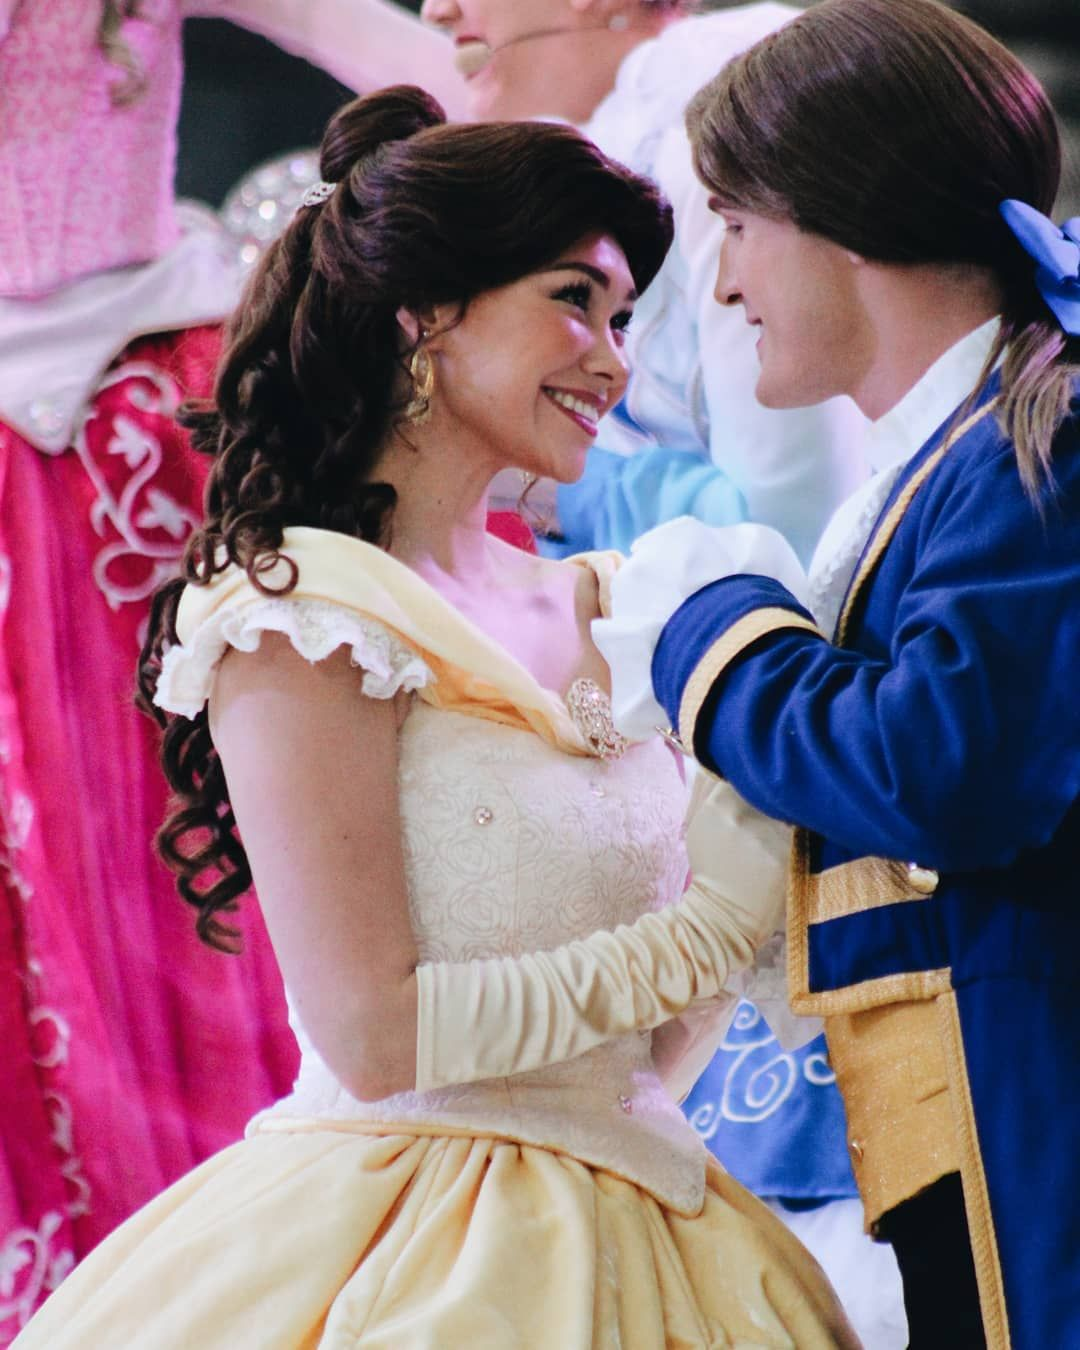 Princess Belle And Prince Adam Beauty And The Beast Gohana: Disney Prince Costume, Disney